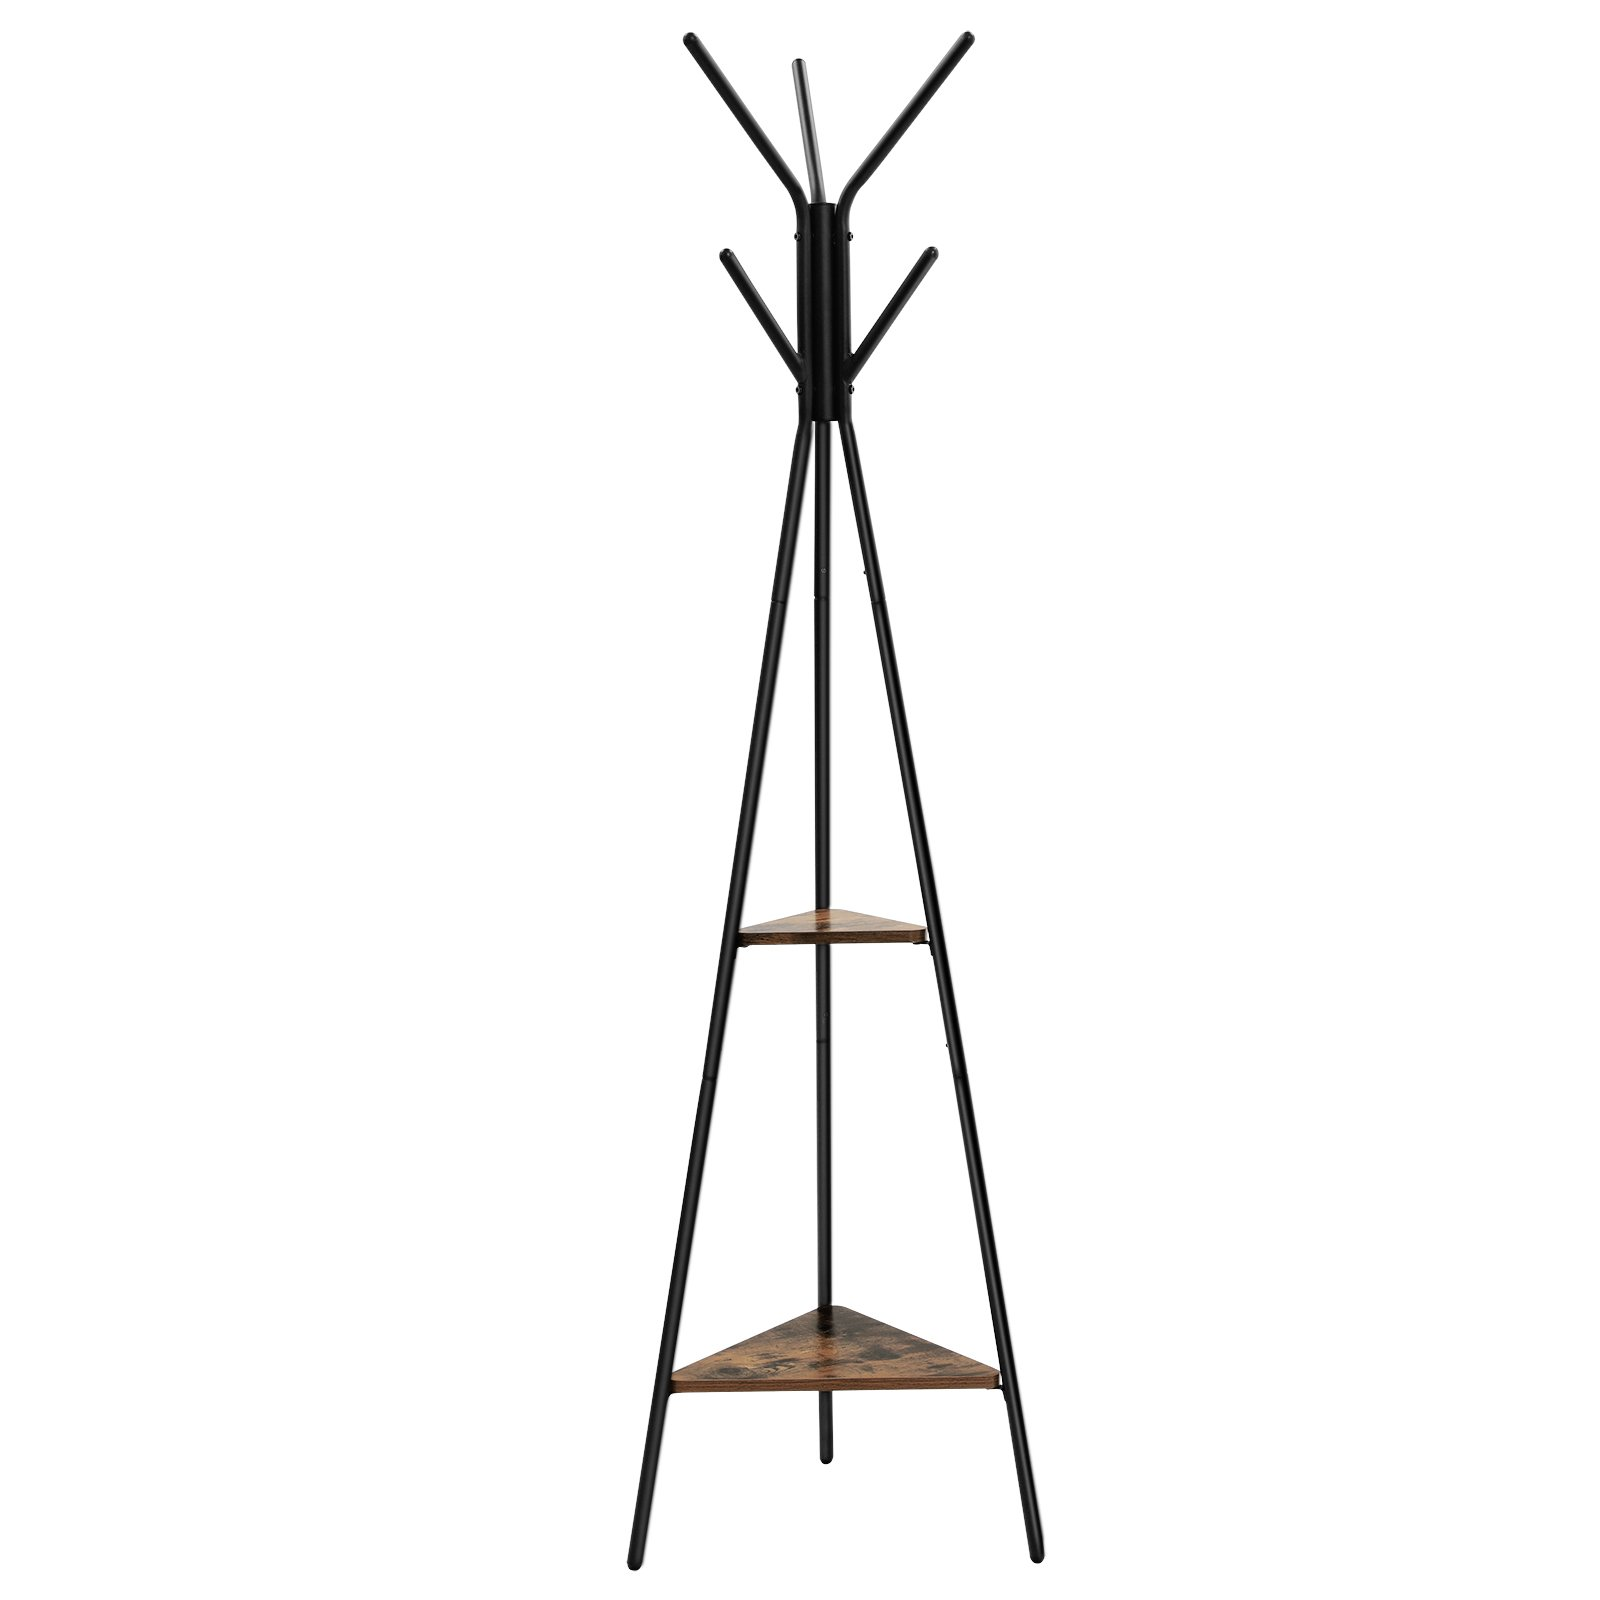 SONGMICS Coat Rack Stand, Coat Tree, Hall Tree Free Standing, Industrial Style, with 2 Shelves, for Clothes, Hat, Bag, Black, Vintage, URCR16BX